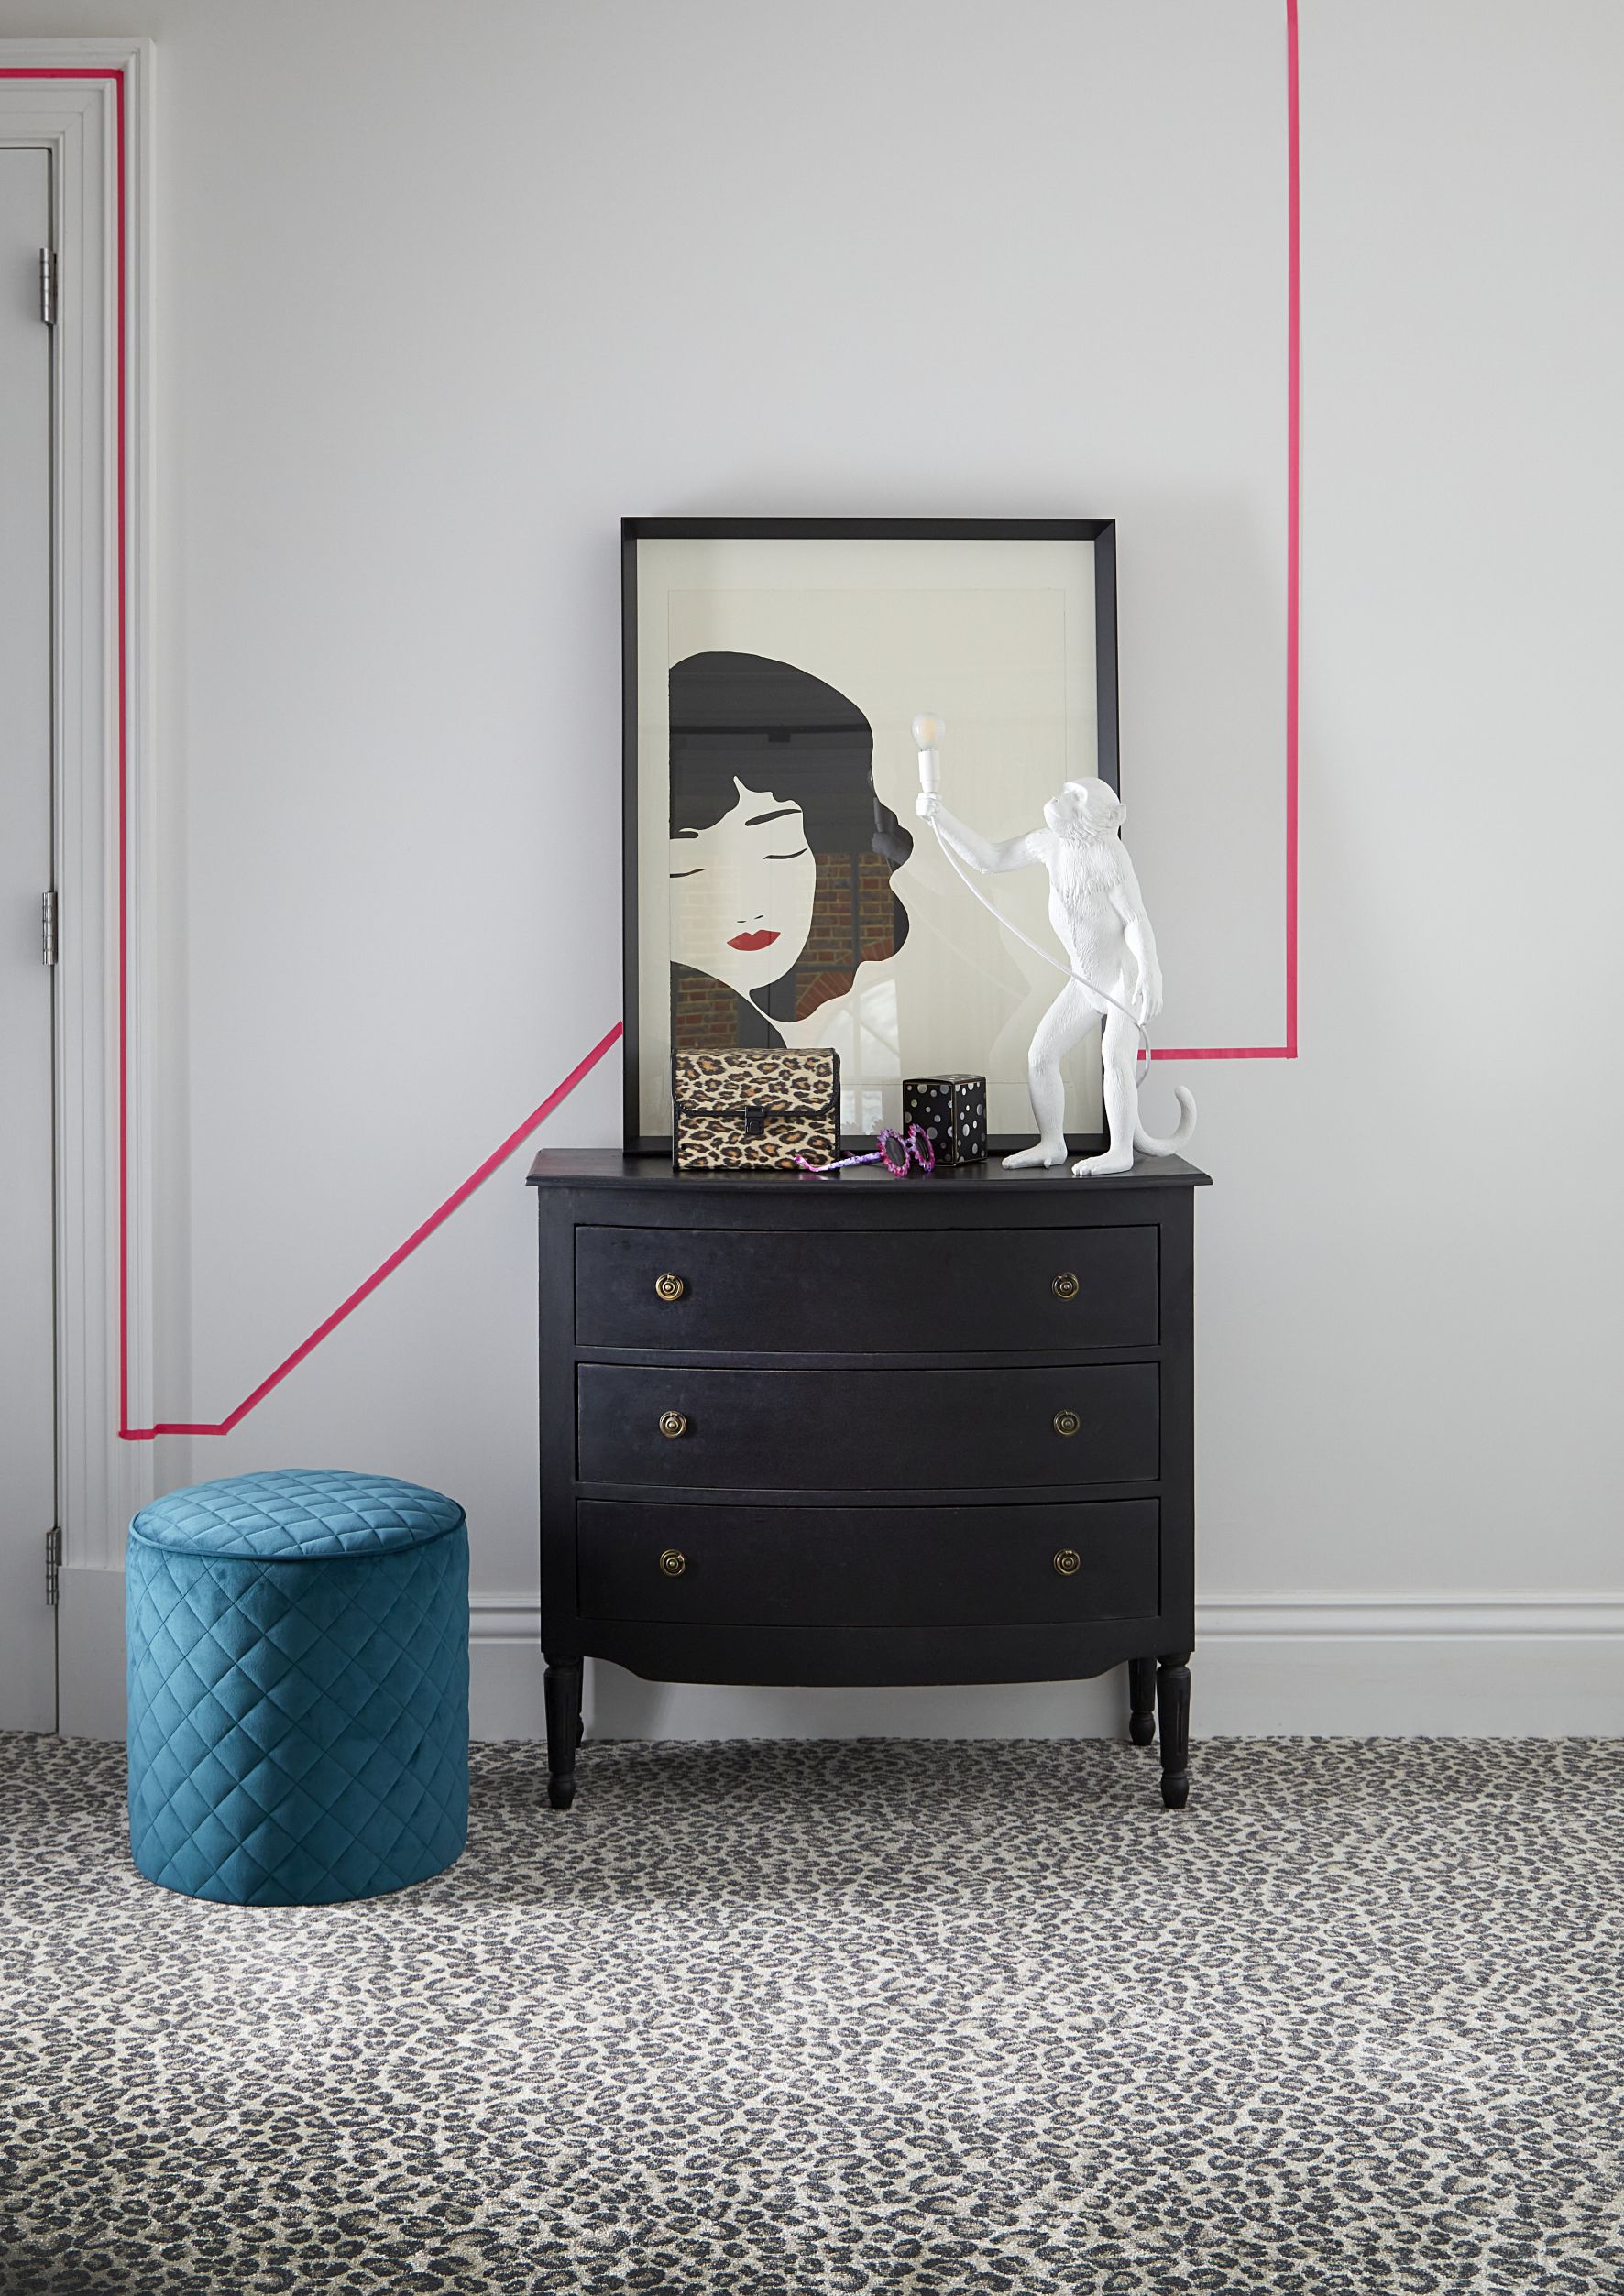 Wall Paint Design Ideas With Tape 50 Inspiring Patterns And Effects Livingetc